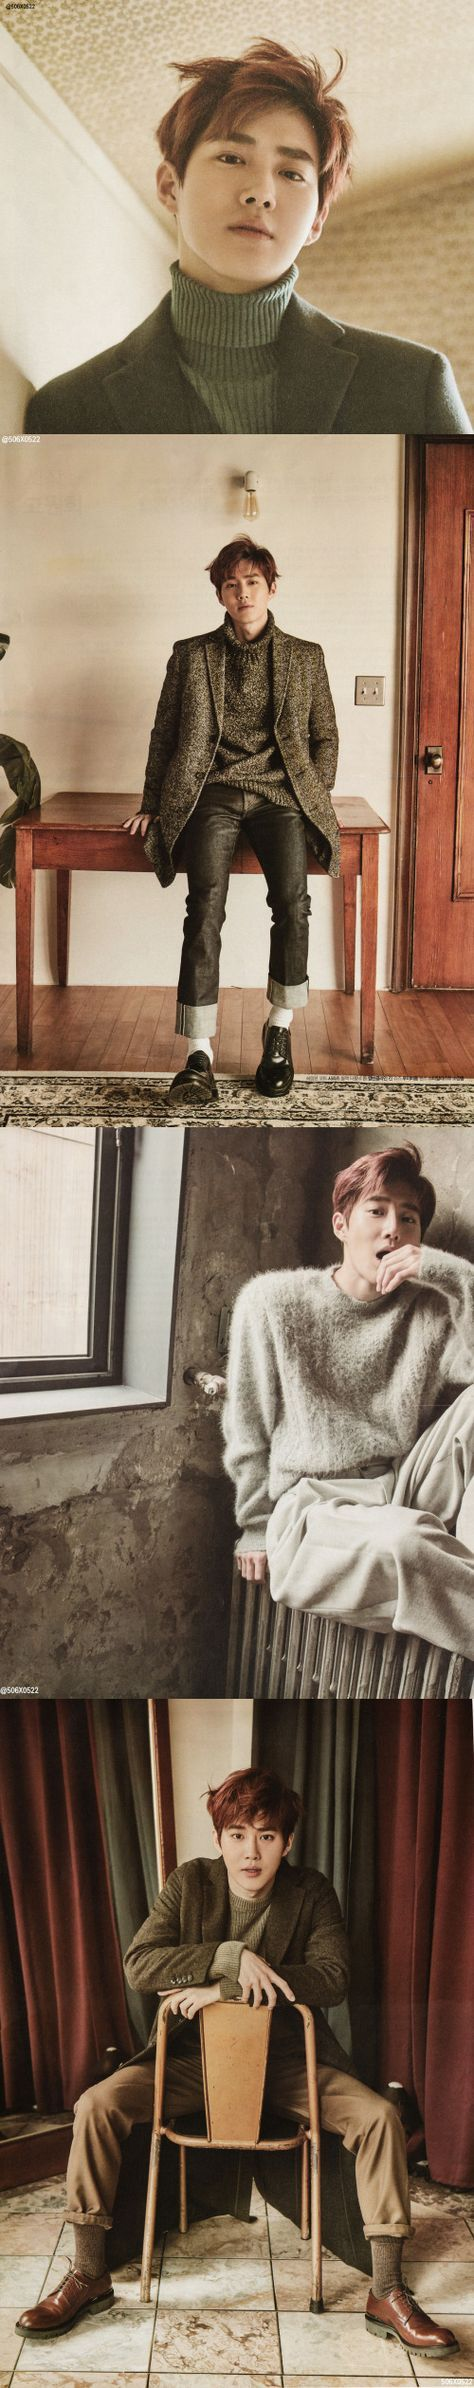 Suho for STAR 1 magazine